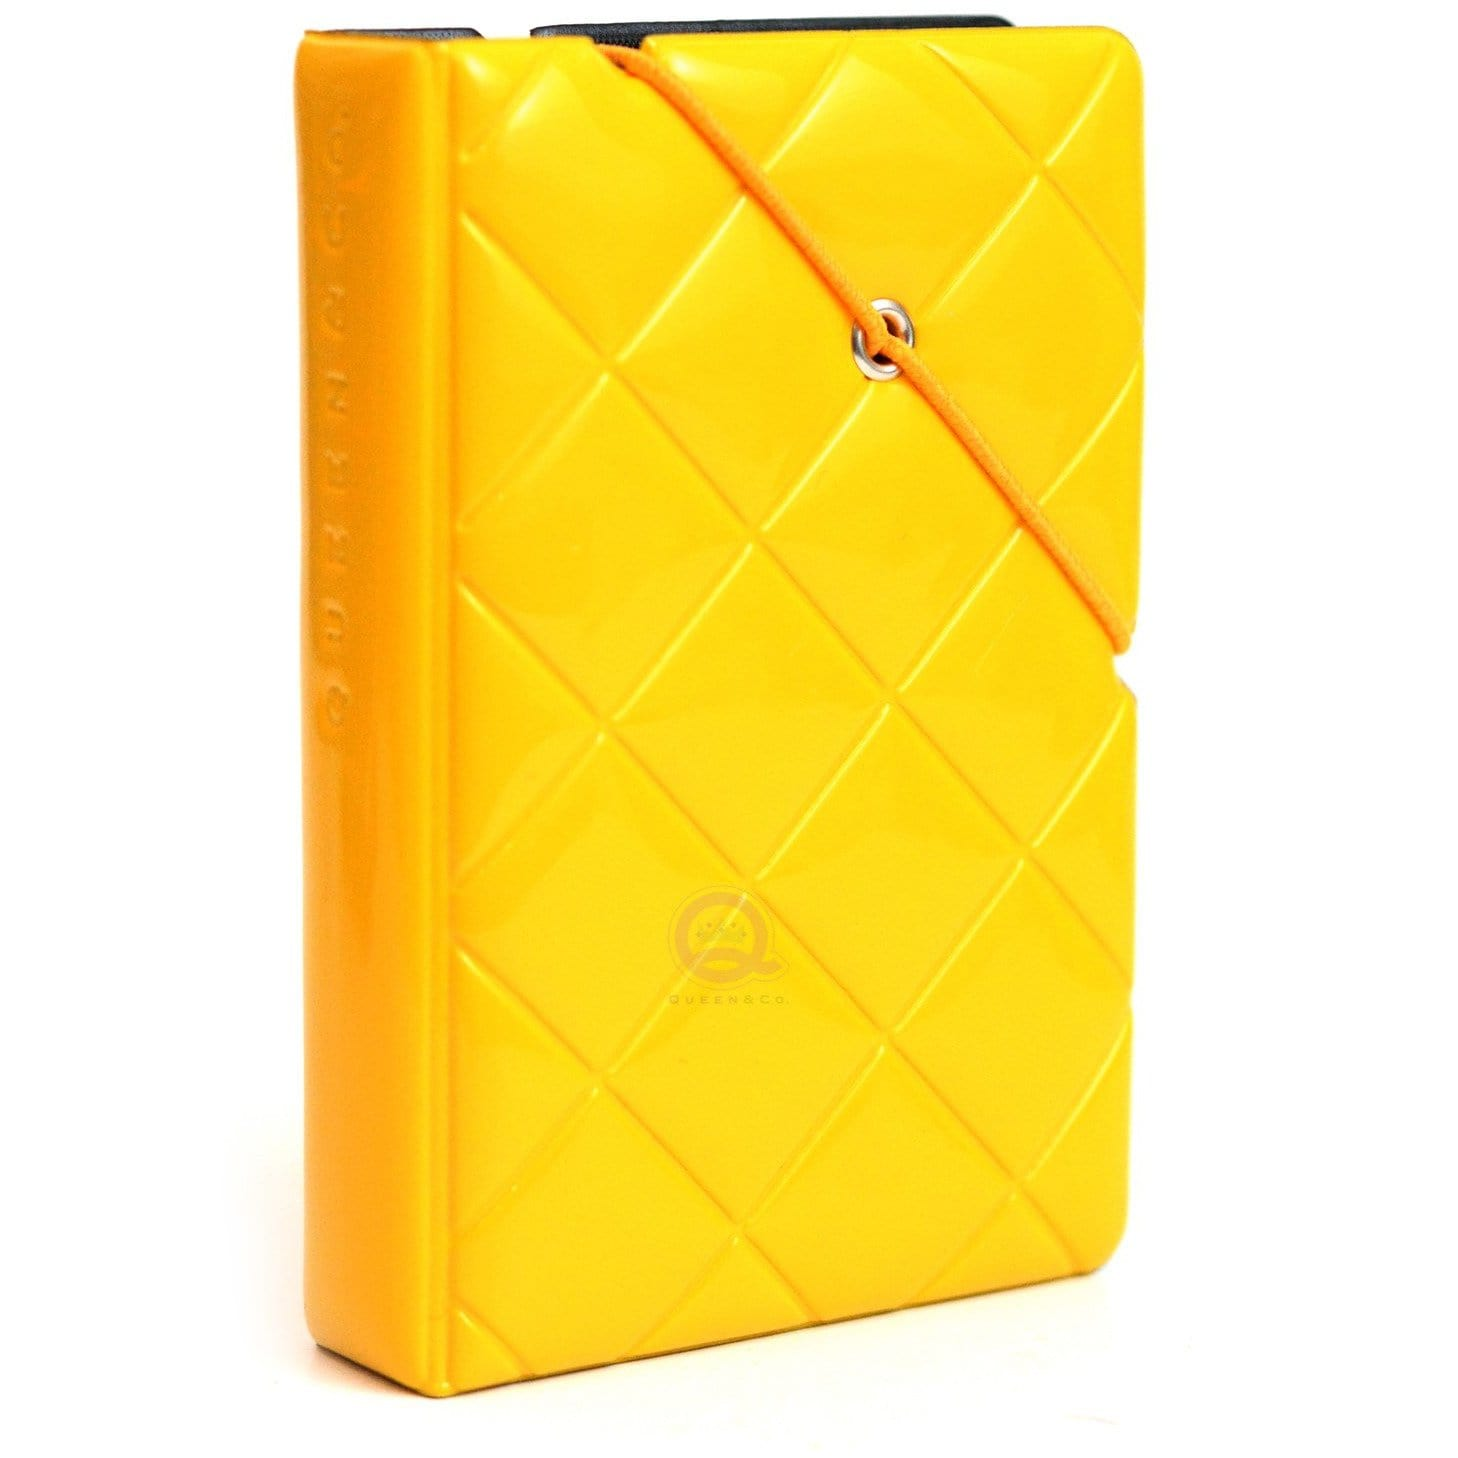 Bling Book - Yellow